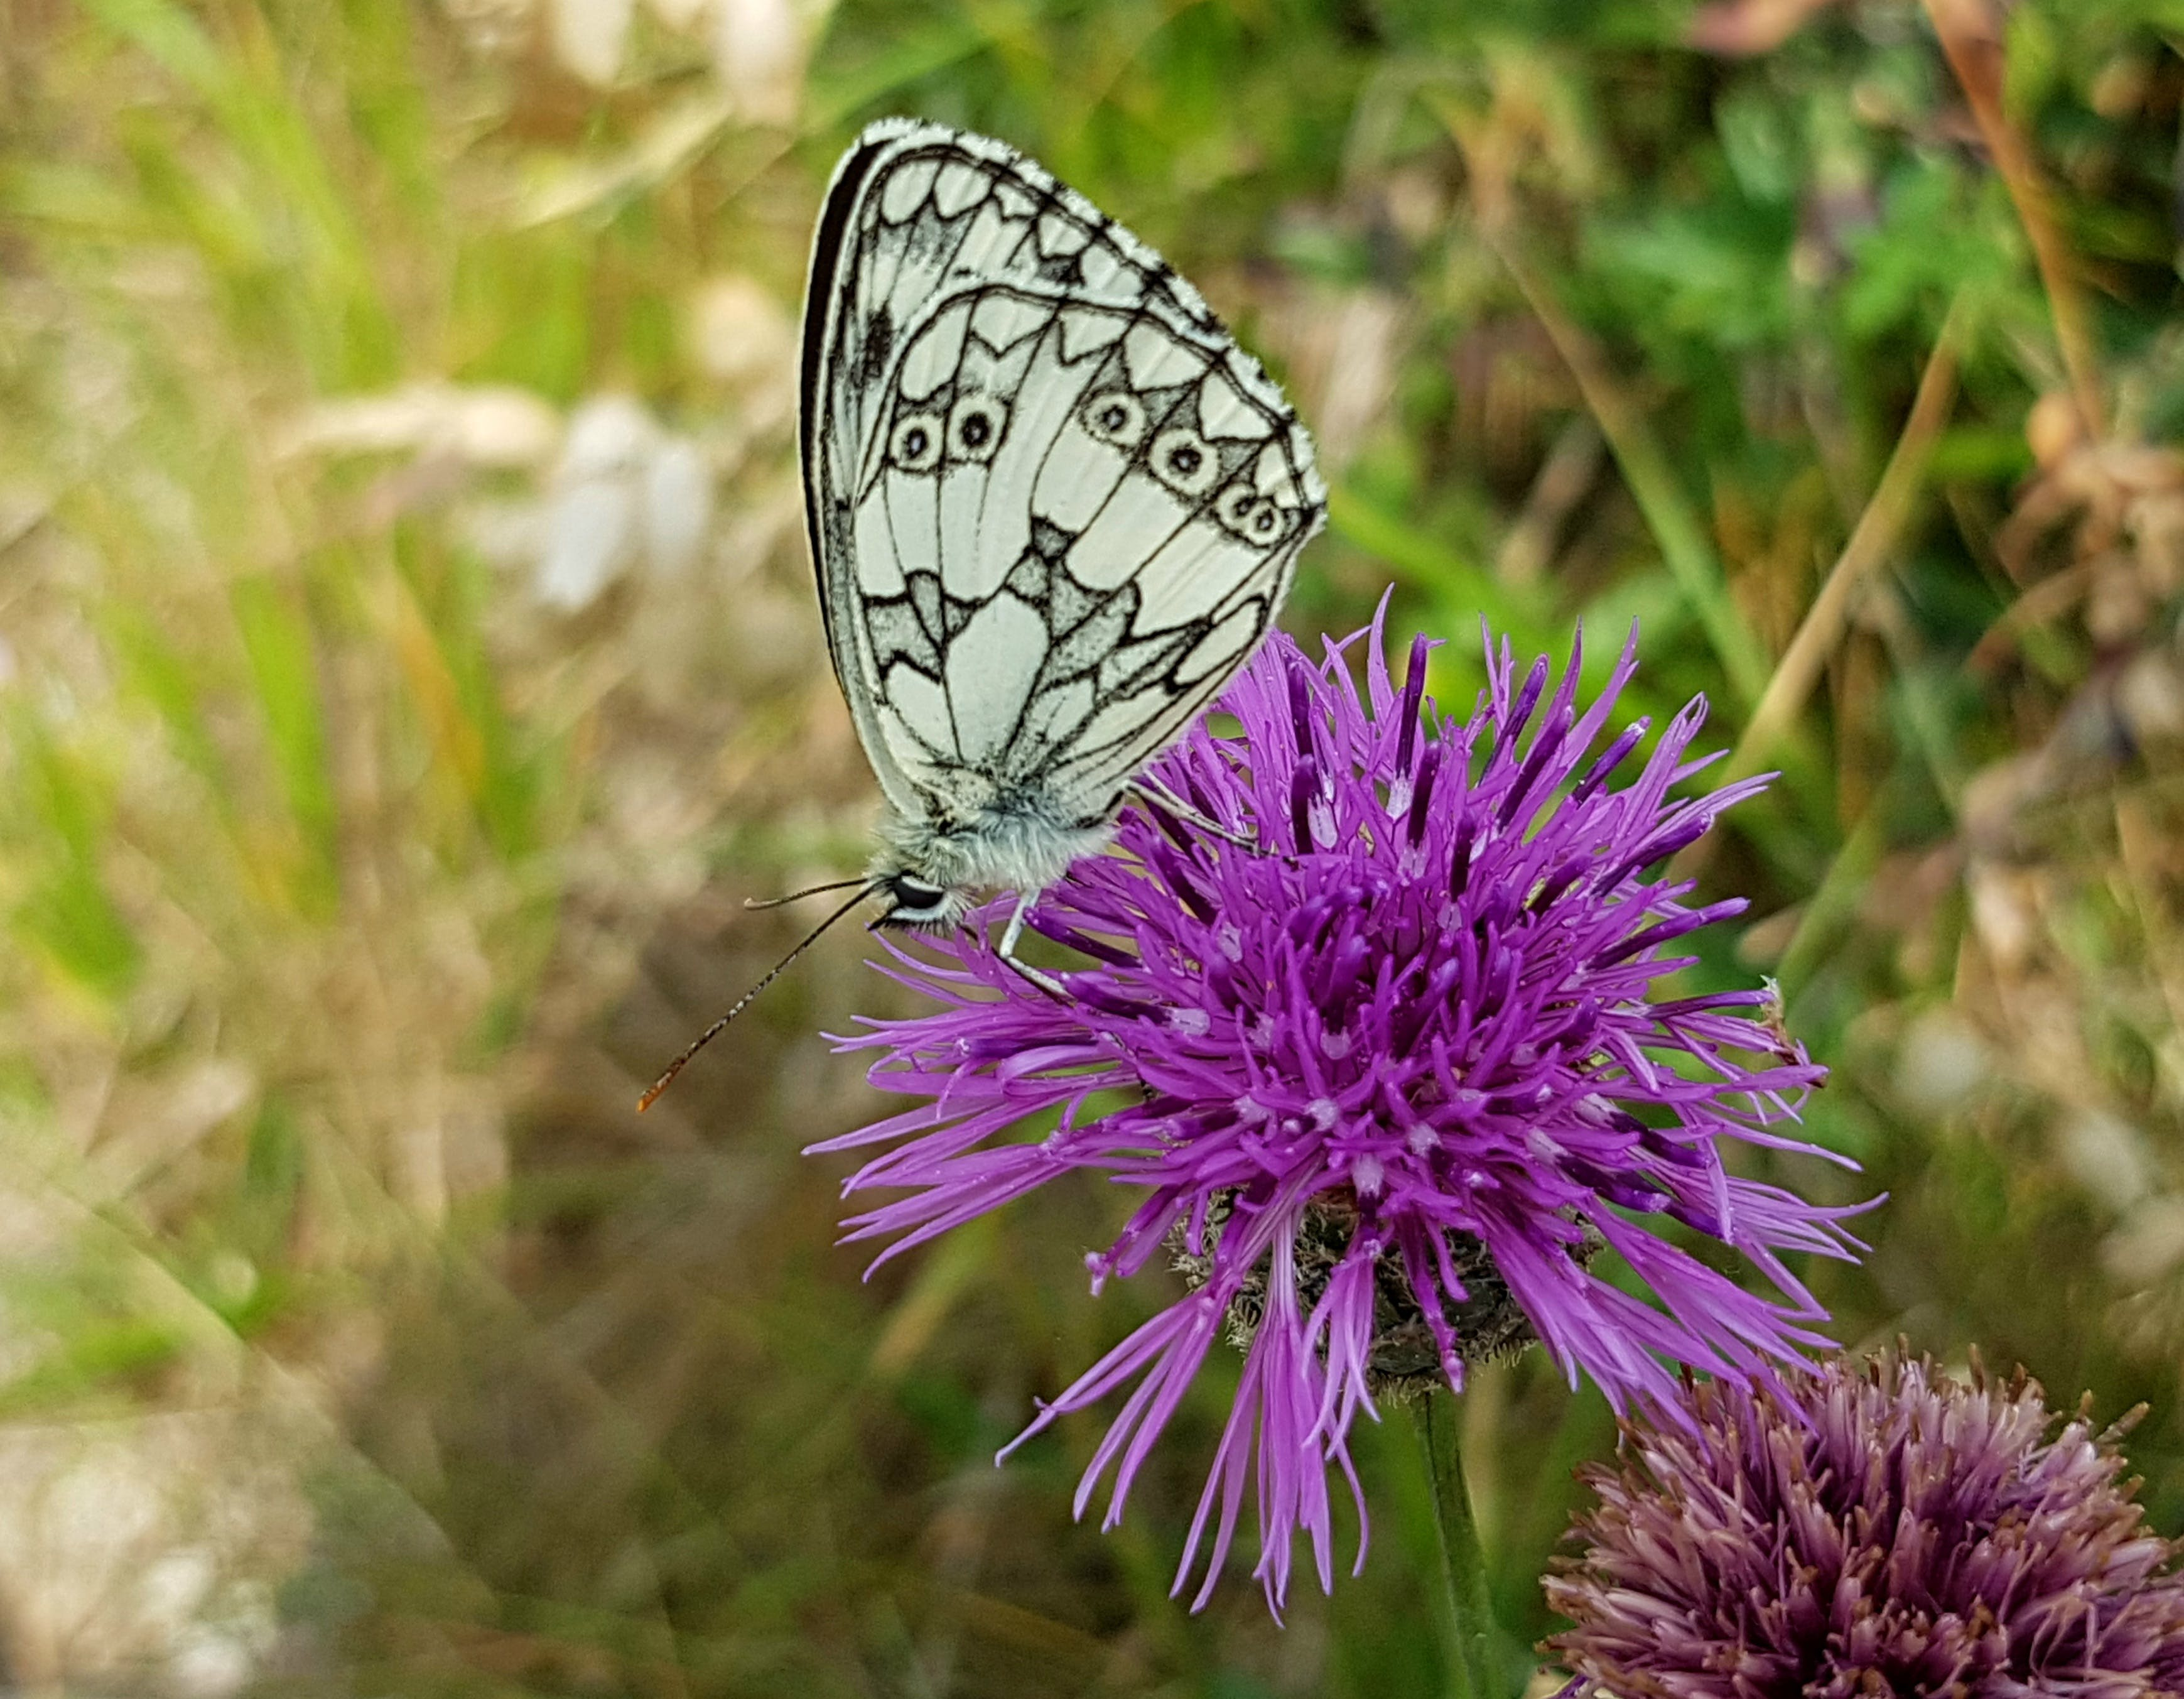 Free stock photo of nature, flower, insect, butterfly